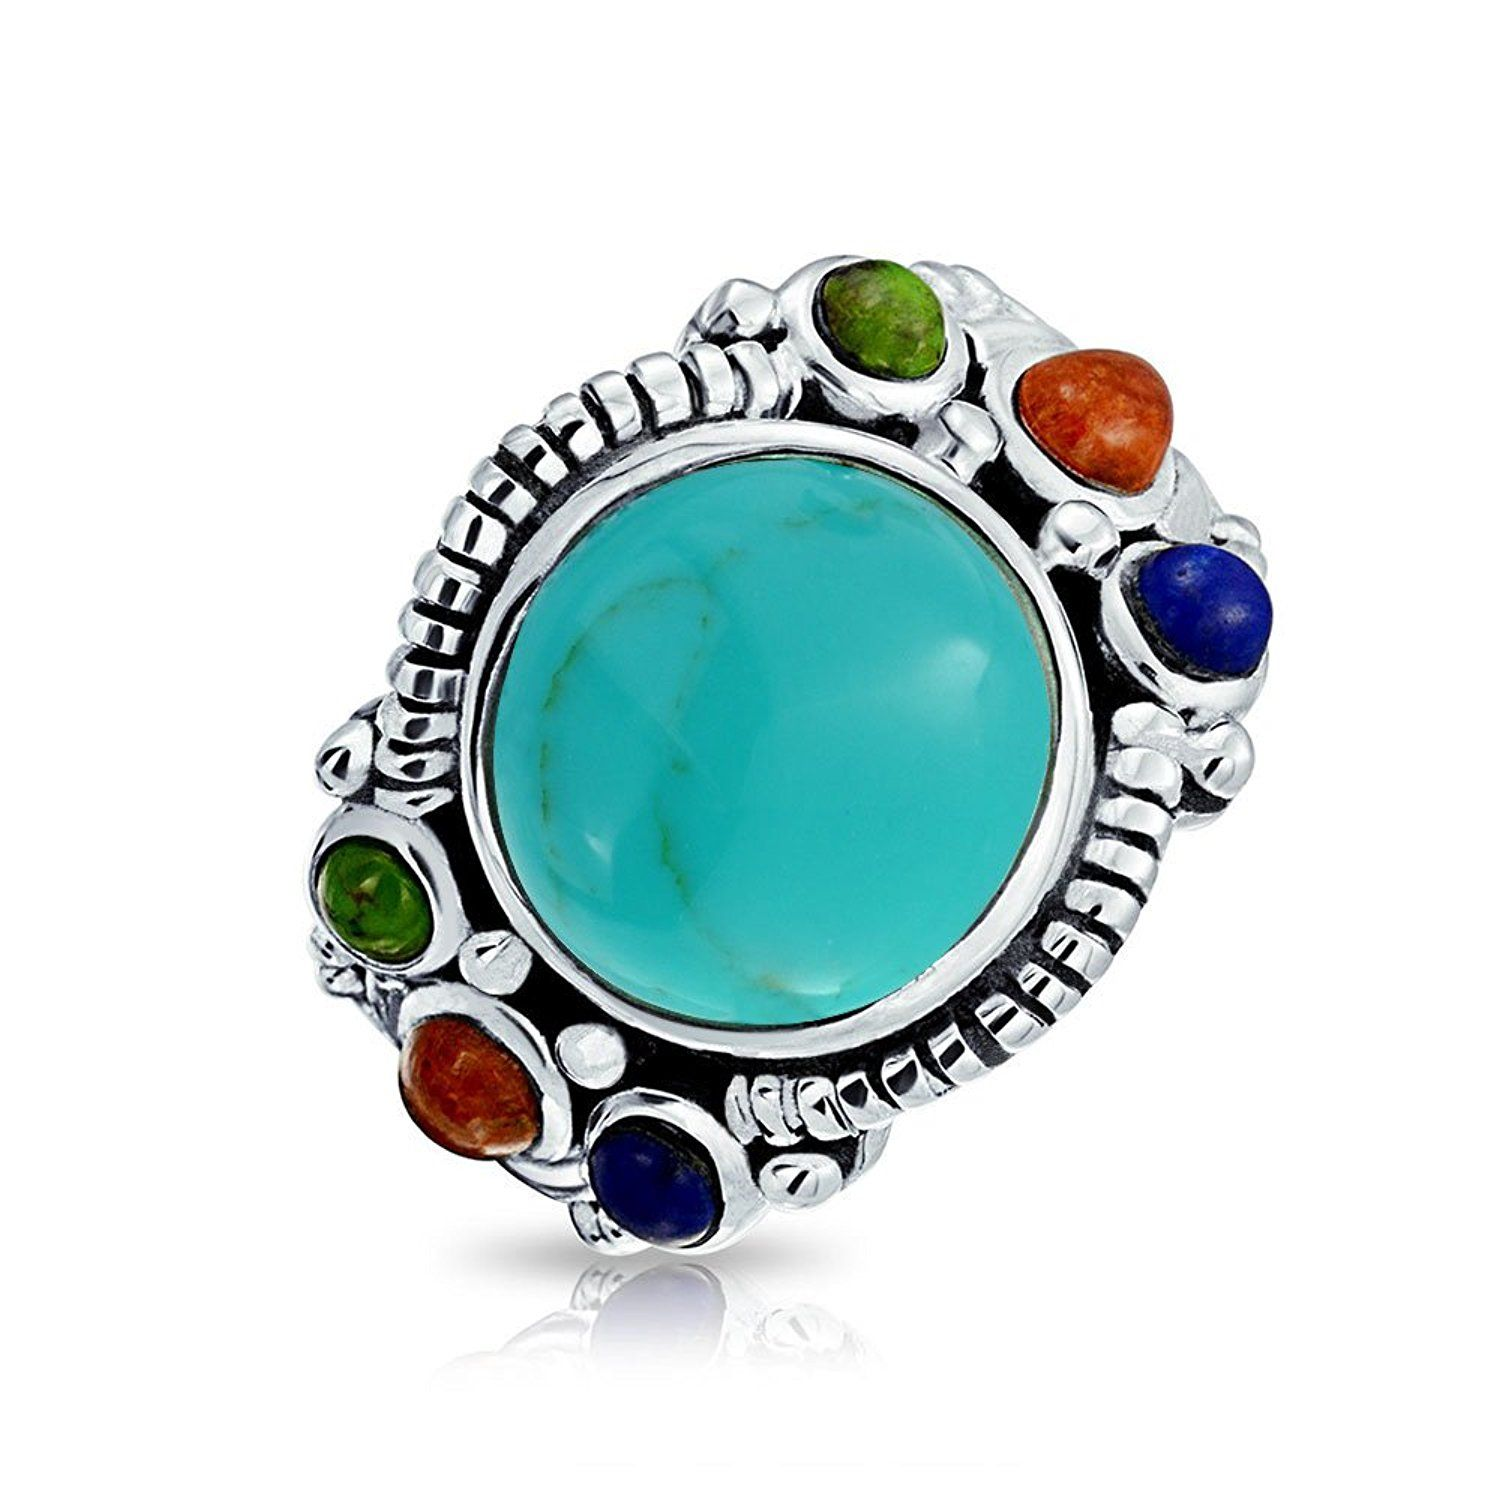 Turquoise stones - natural and synthetic